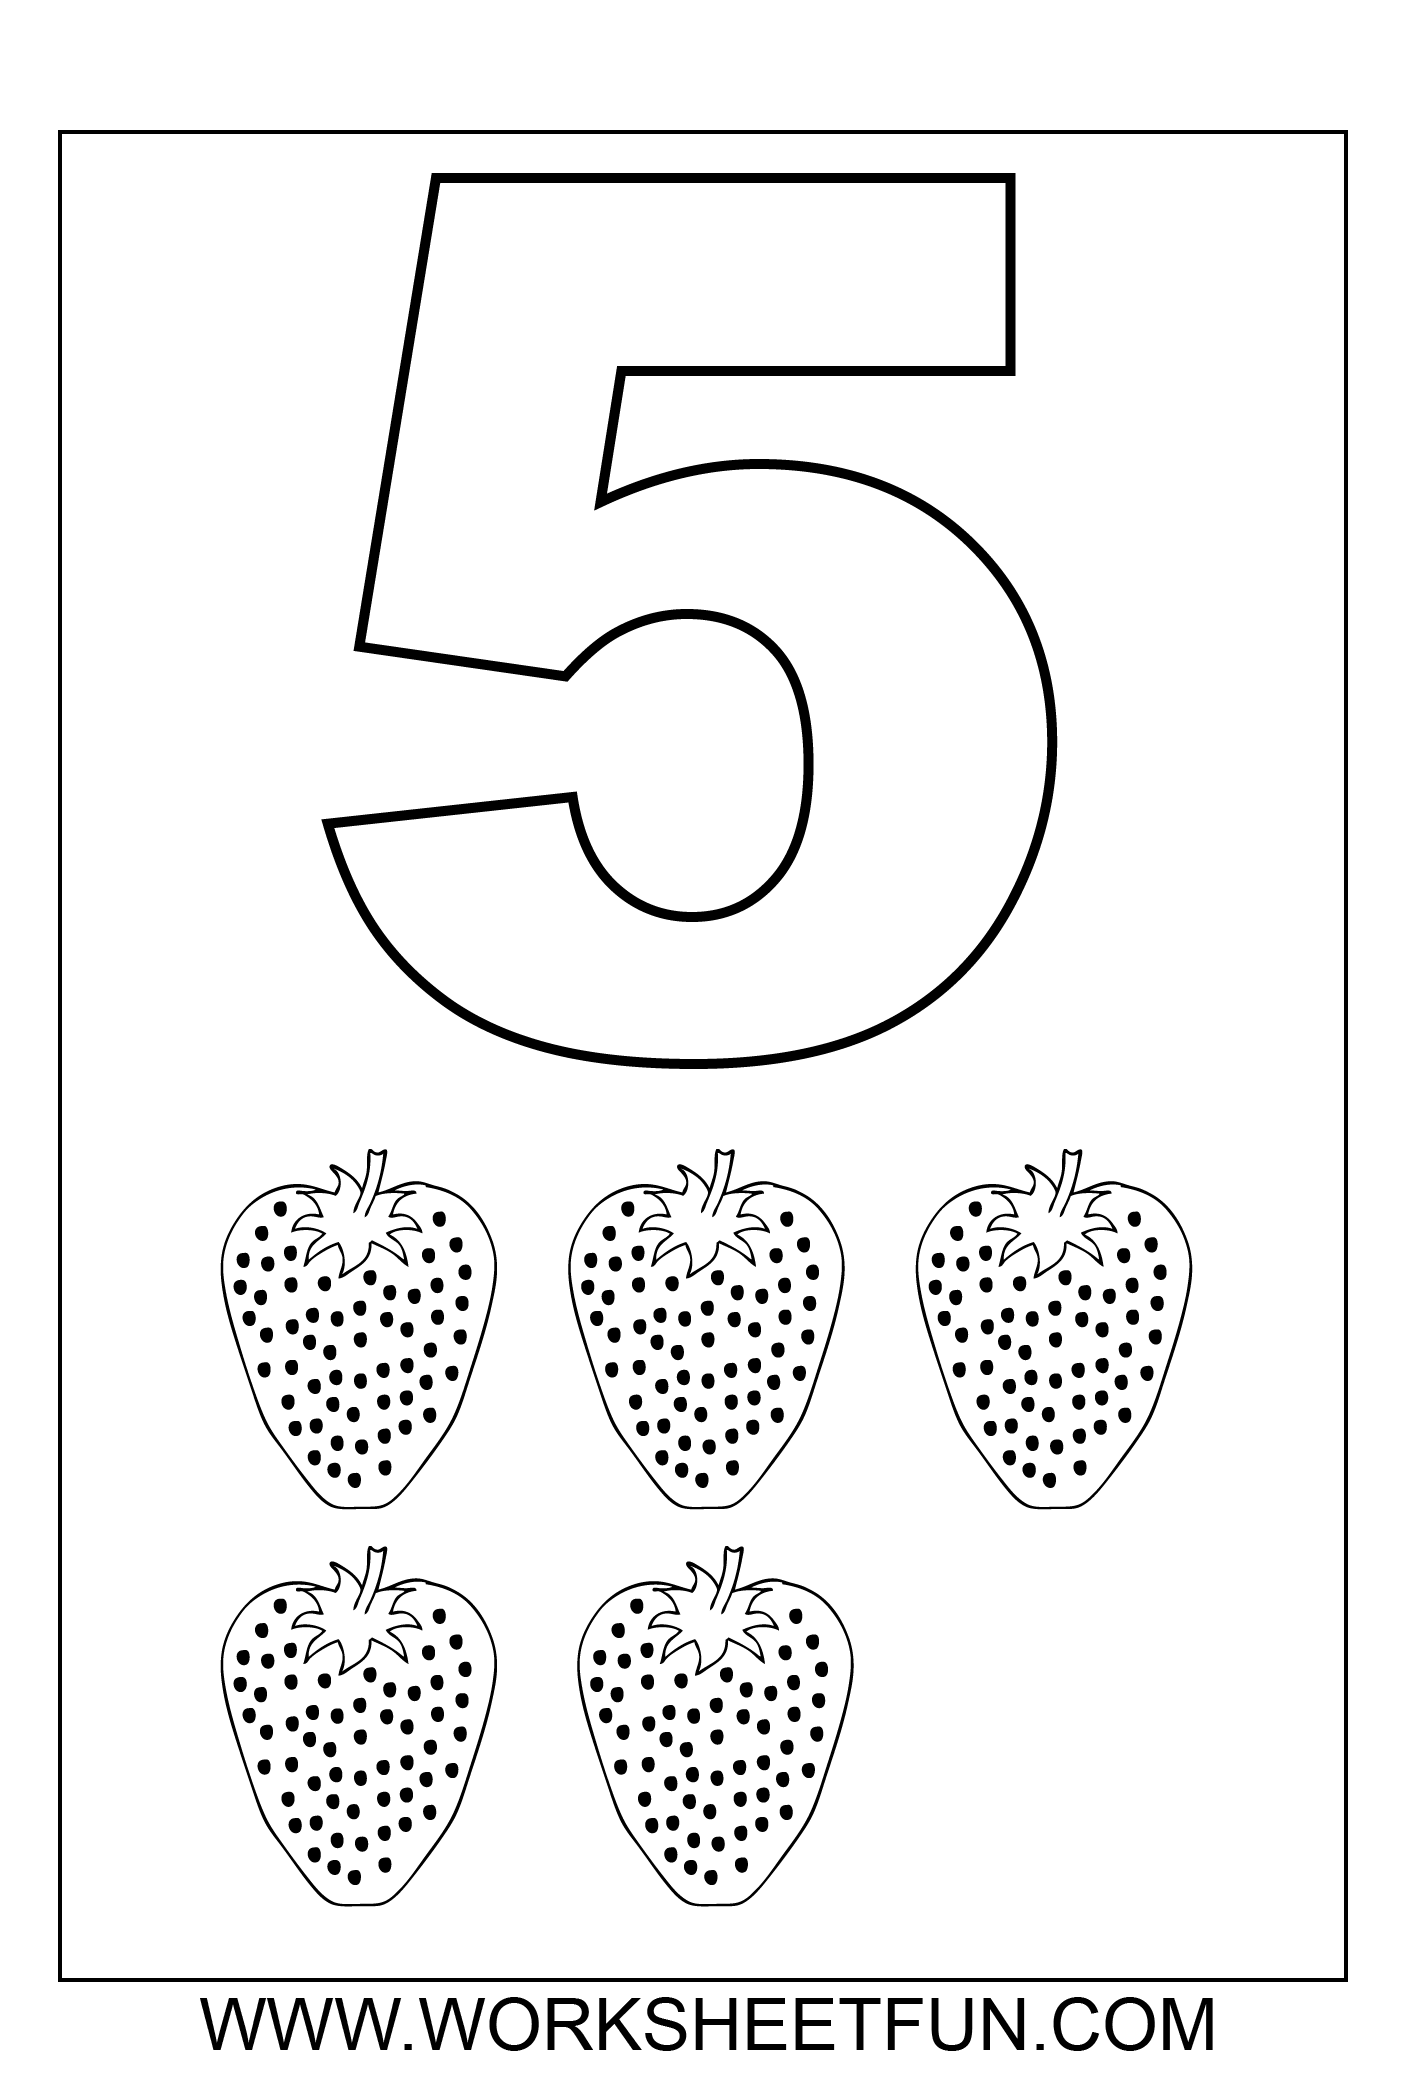 Number Coloring Pages 1 10 Worksheets Free Printable Worksheets Worksheetfun